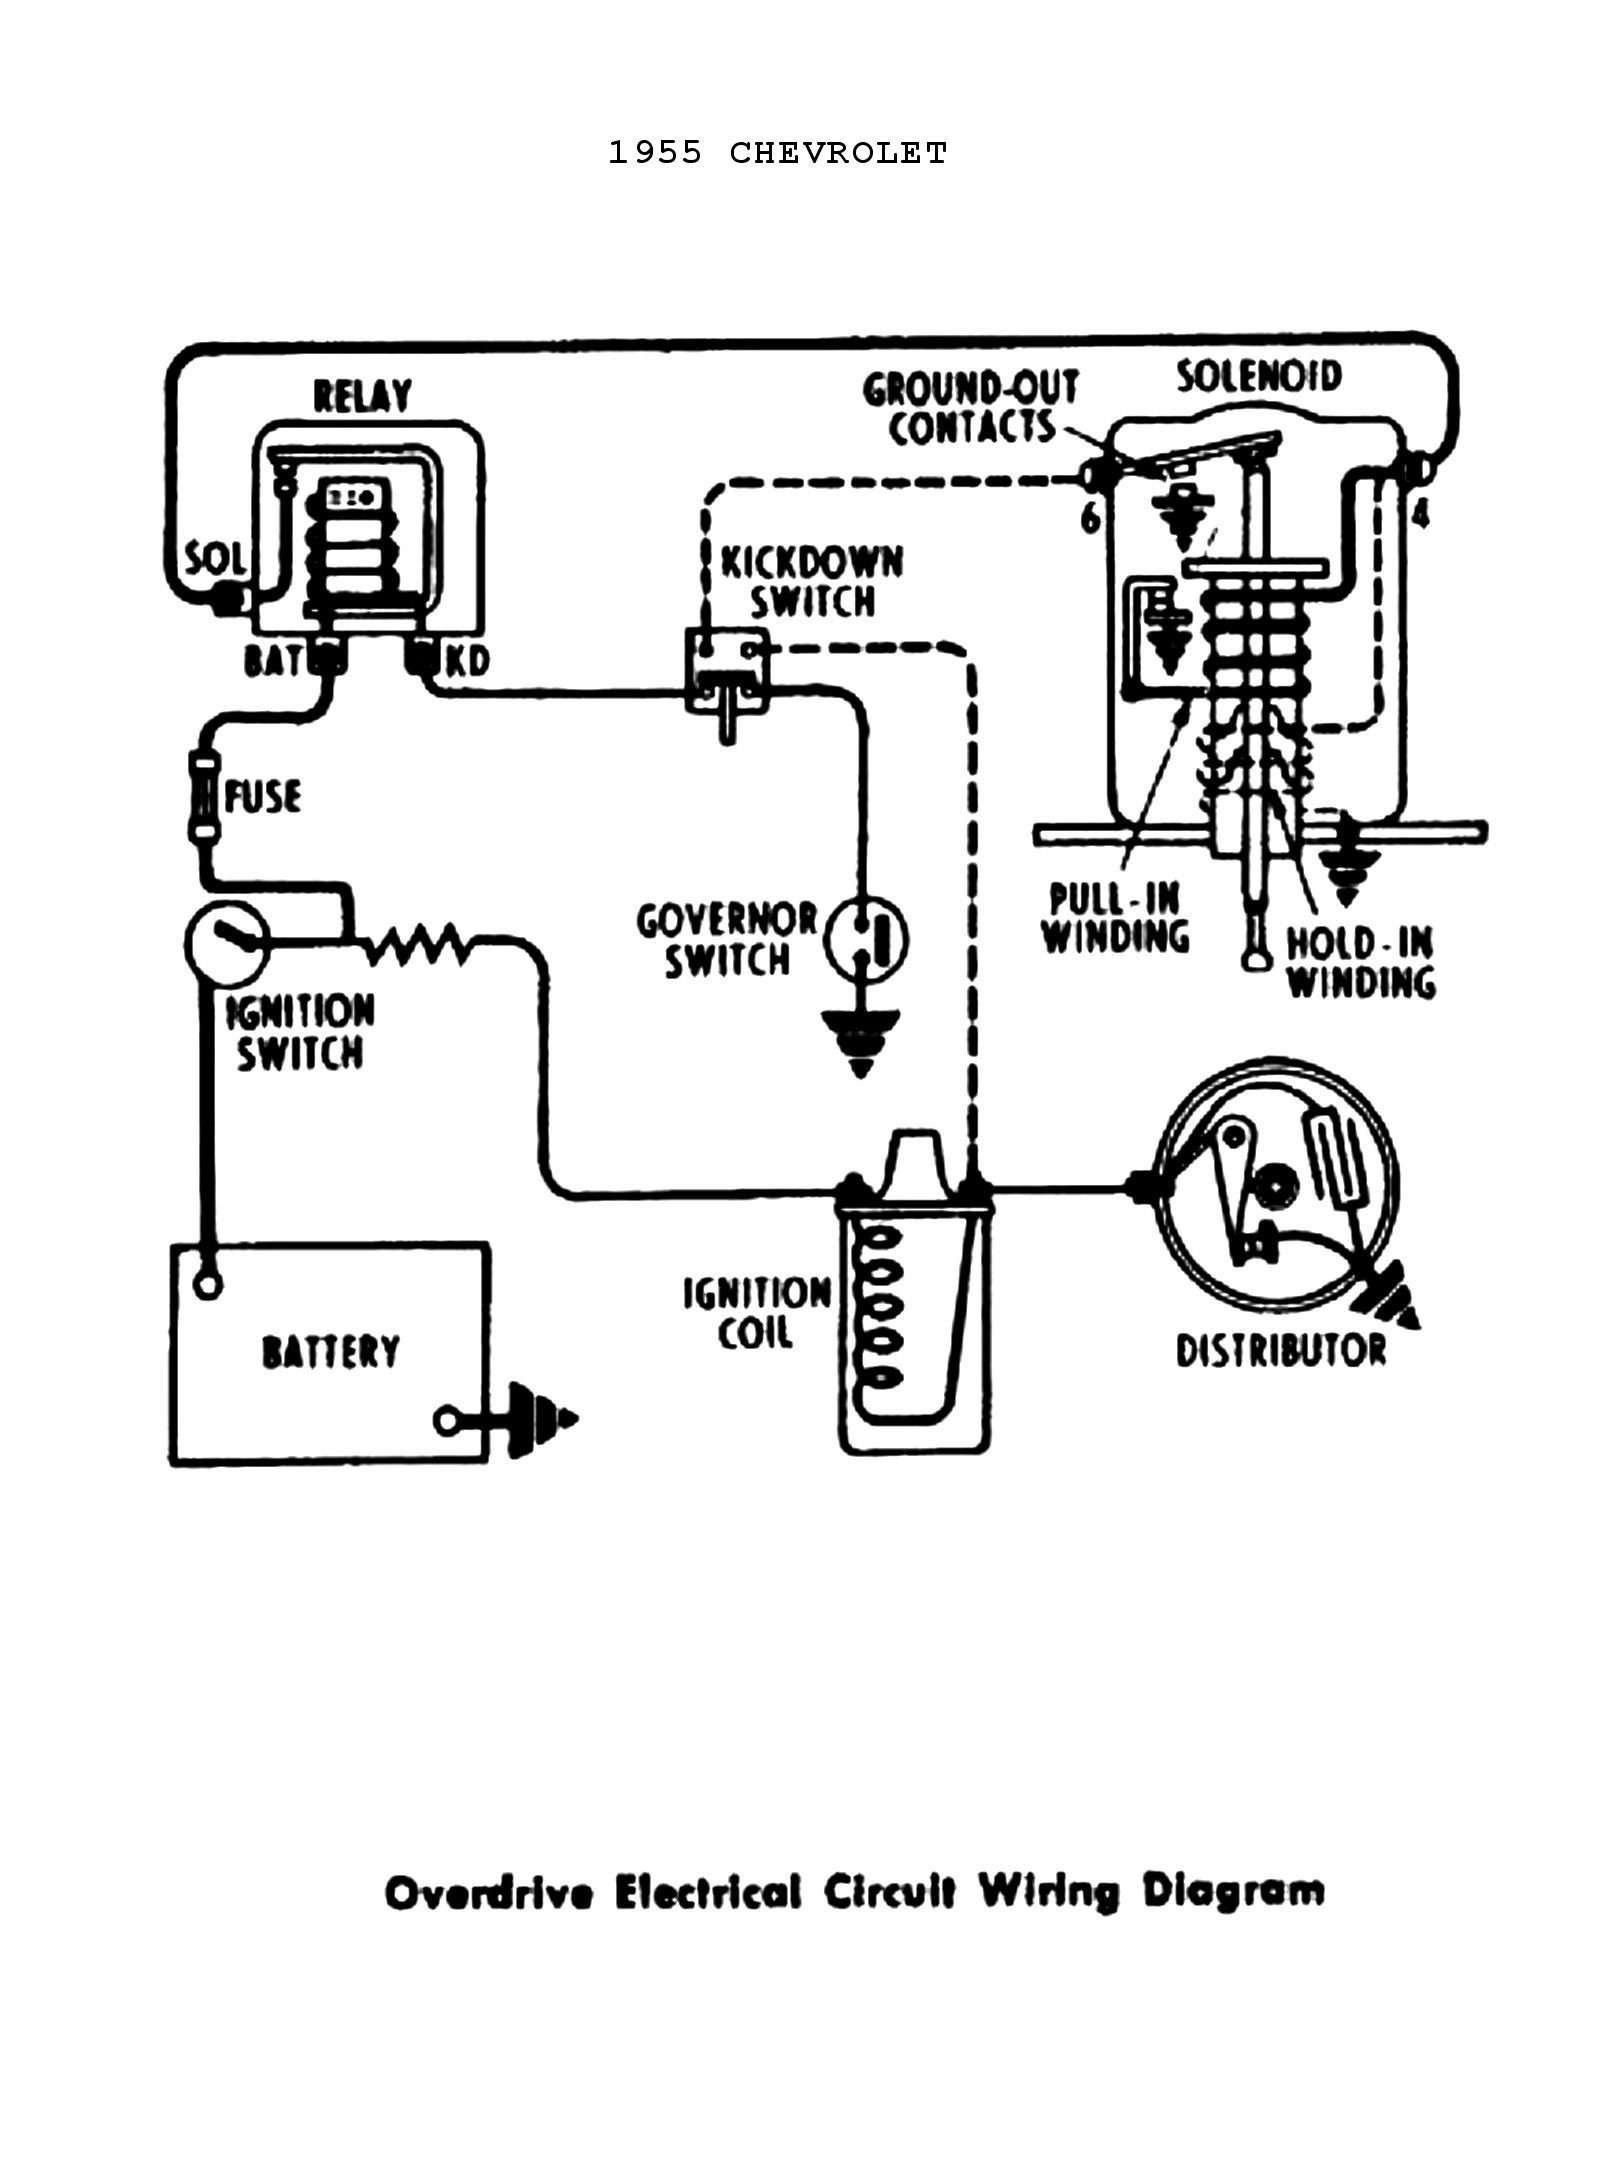 Car dimmer switch wiring diagram automotive switch wiring diagram automotive switch wiring diagram new car ignition system wiring cheapraybanclubmaster Gallery